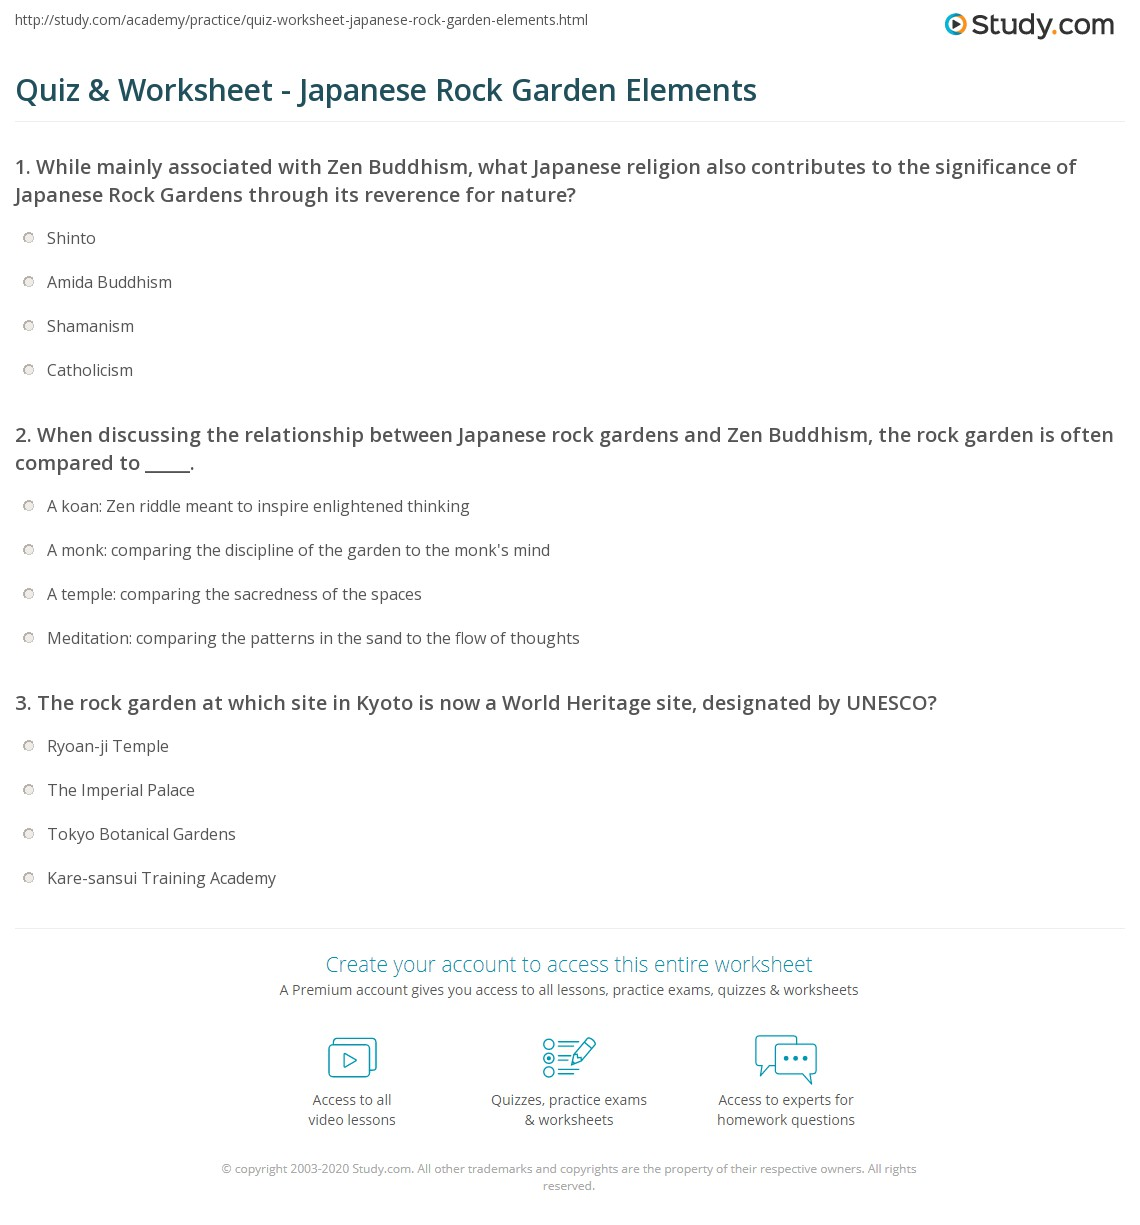 quiz worksheet japanese rock garden elements. Black Bedroom Furniture Sets. Home Design Ideas